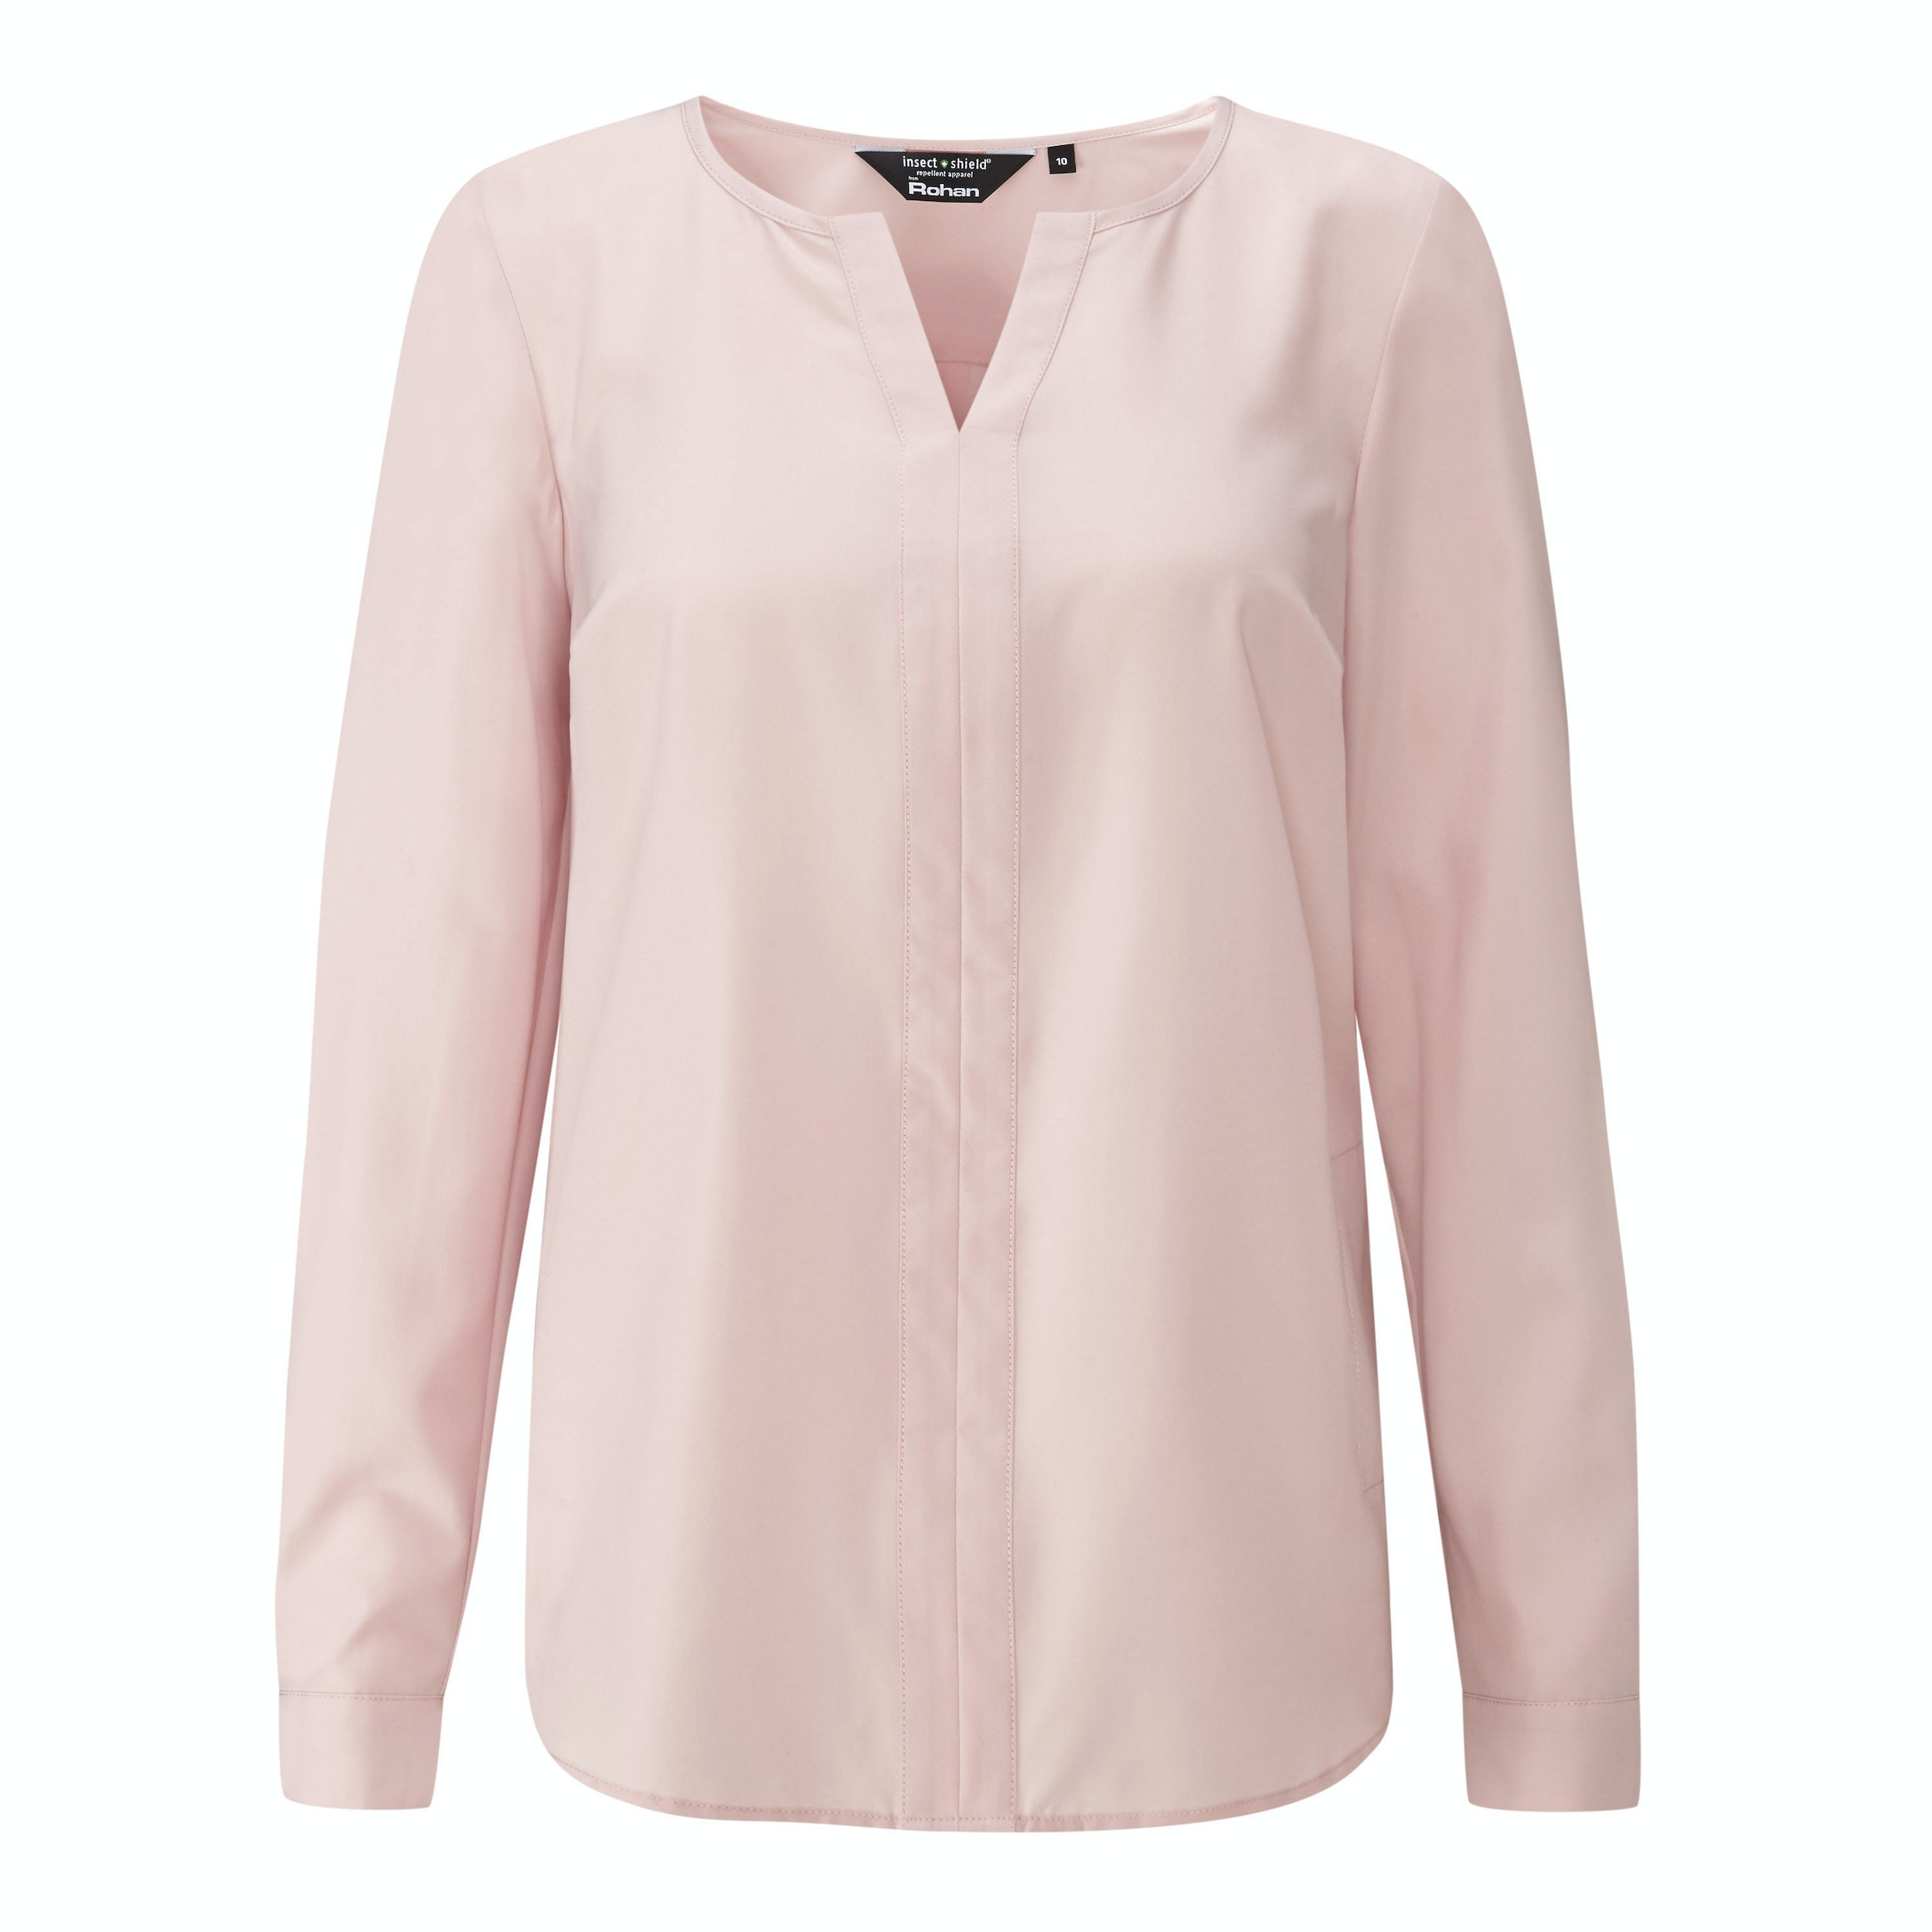 1cc4bb5f Women's Tian Shirt - Versatile, stylish shirt with insect protection.